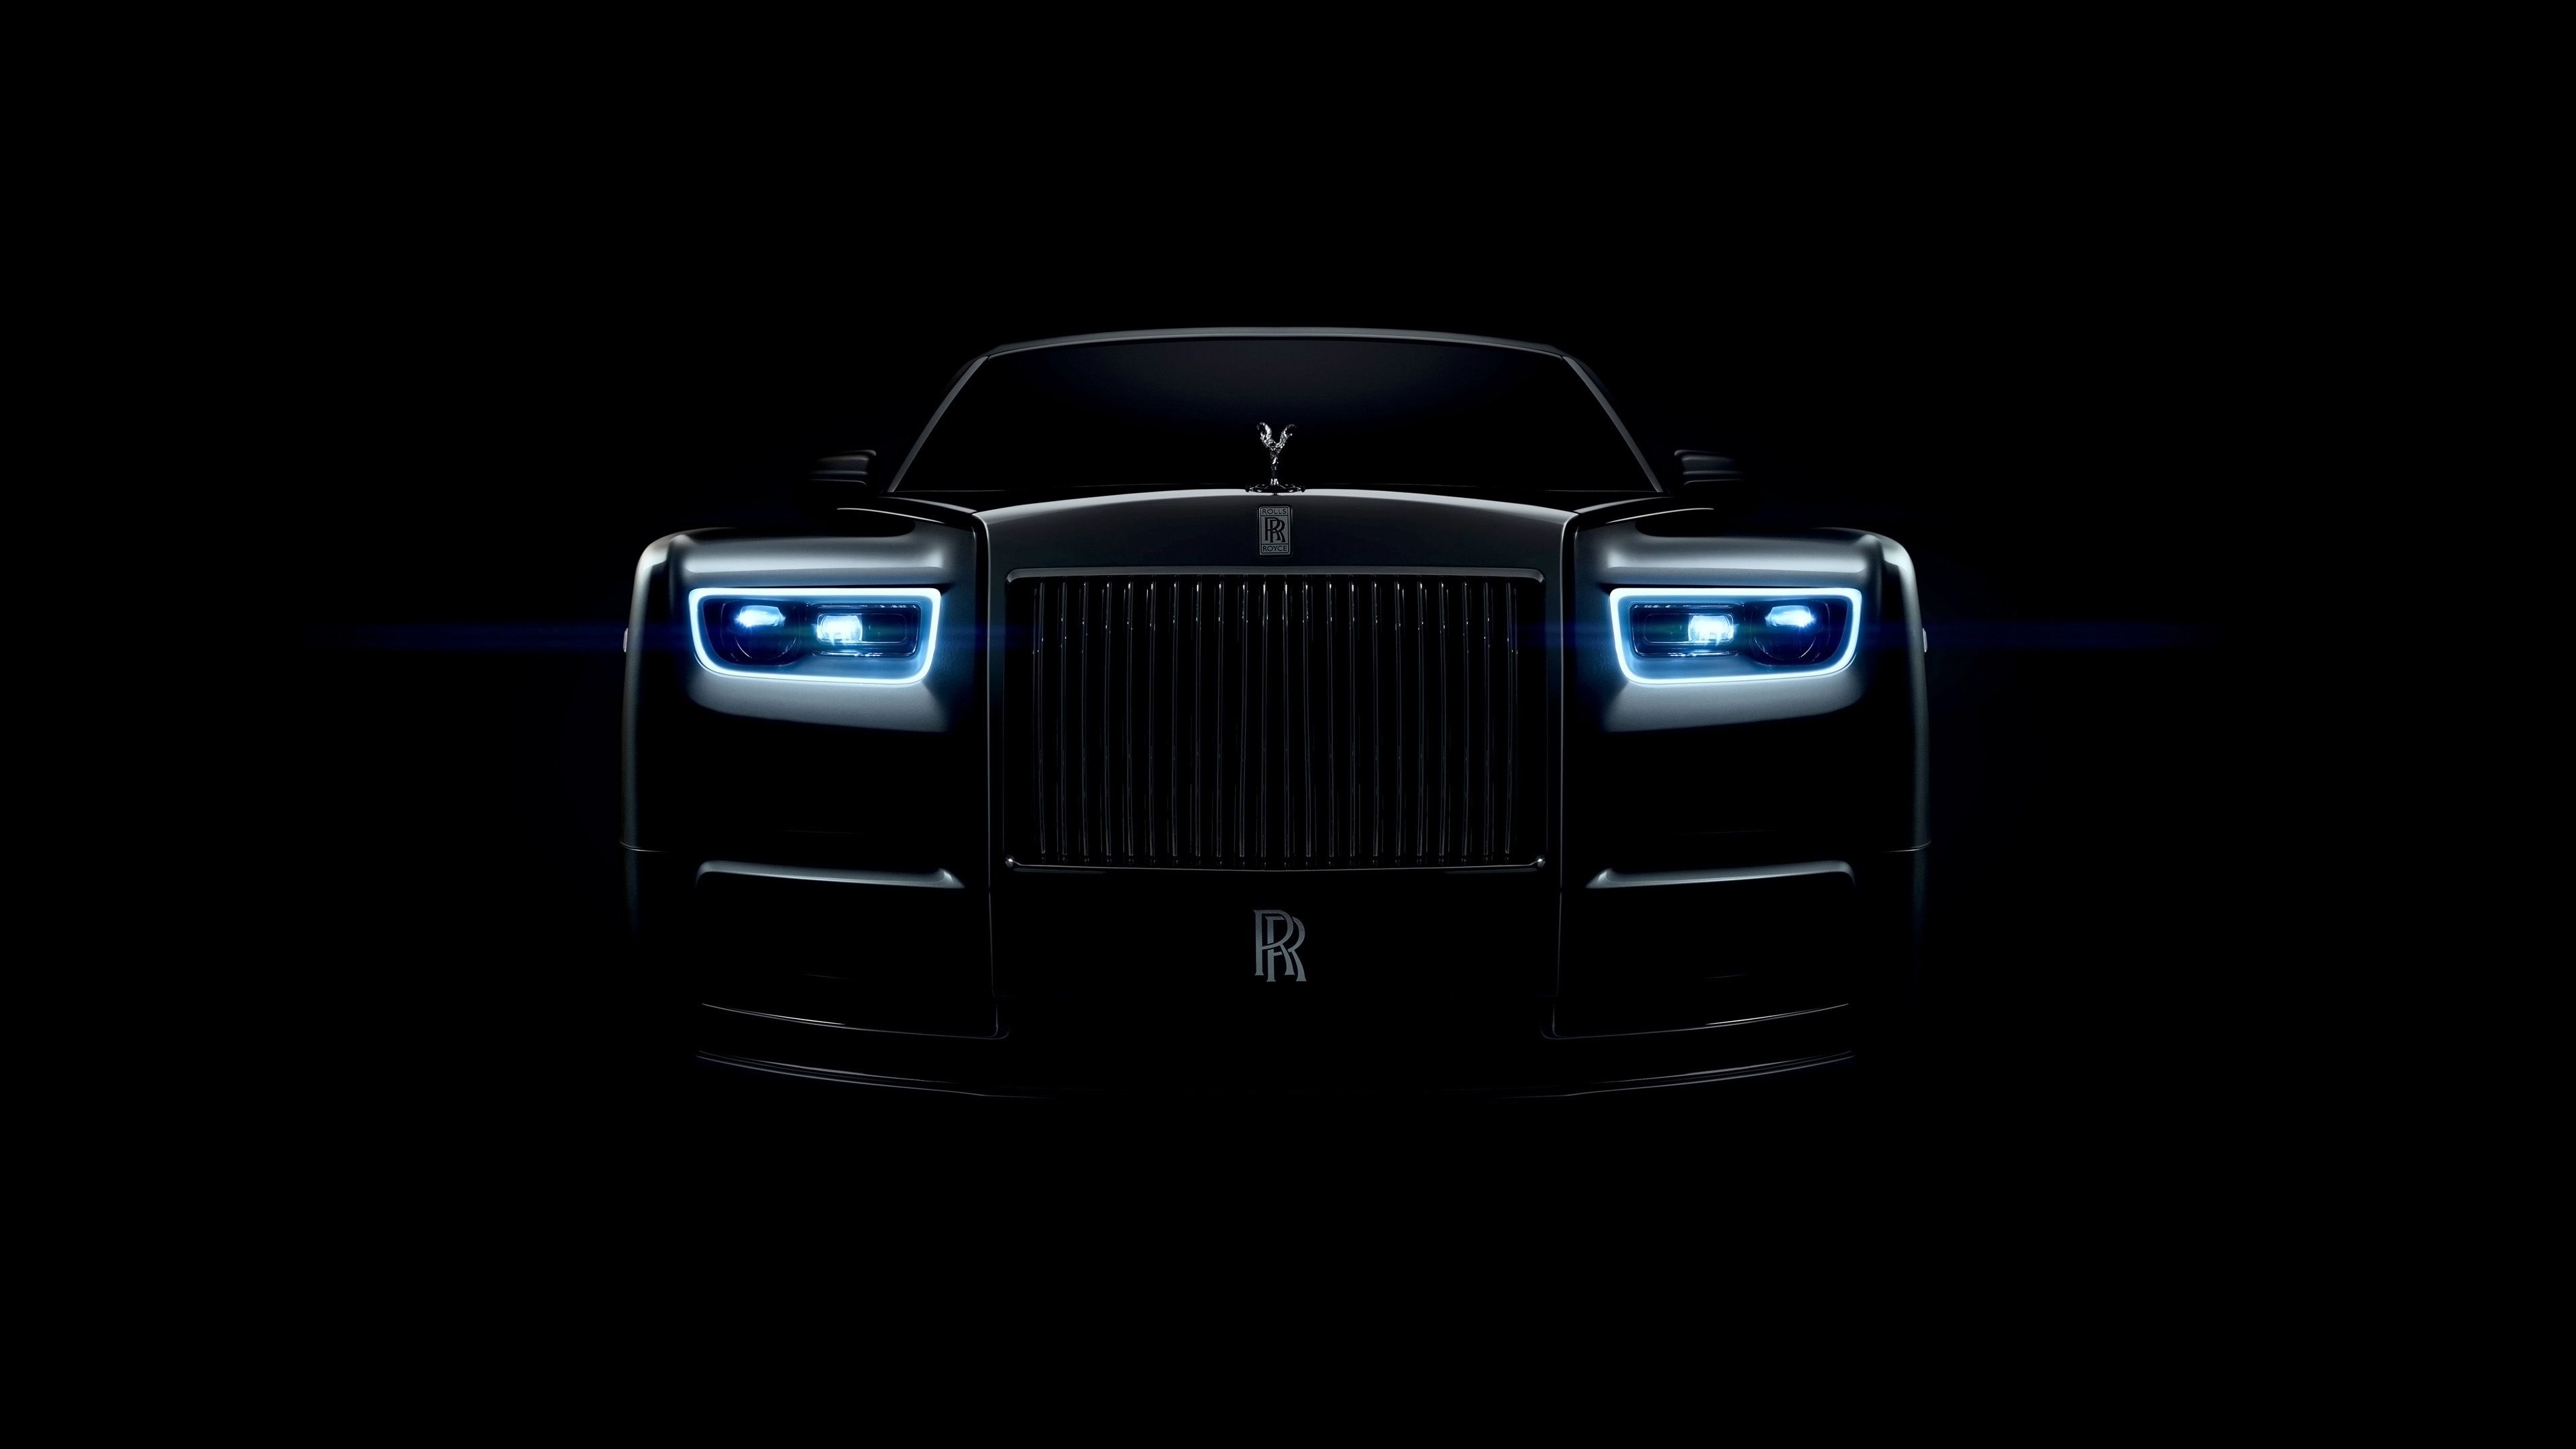 Rolls Royce Car Wallpapers Top Free Rolls Royce Car Backgrounds Wallpaperaccess